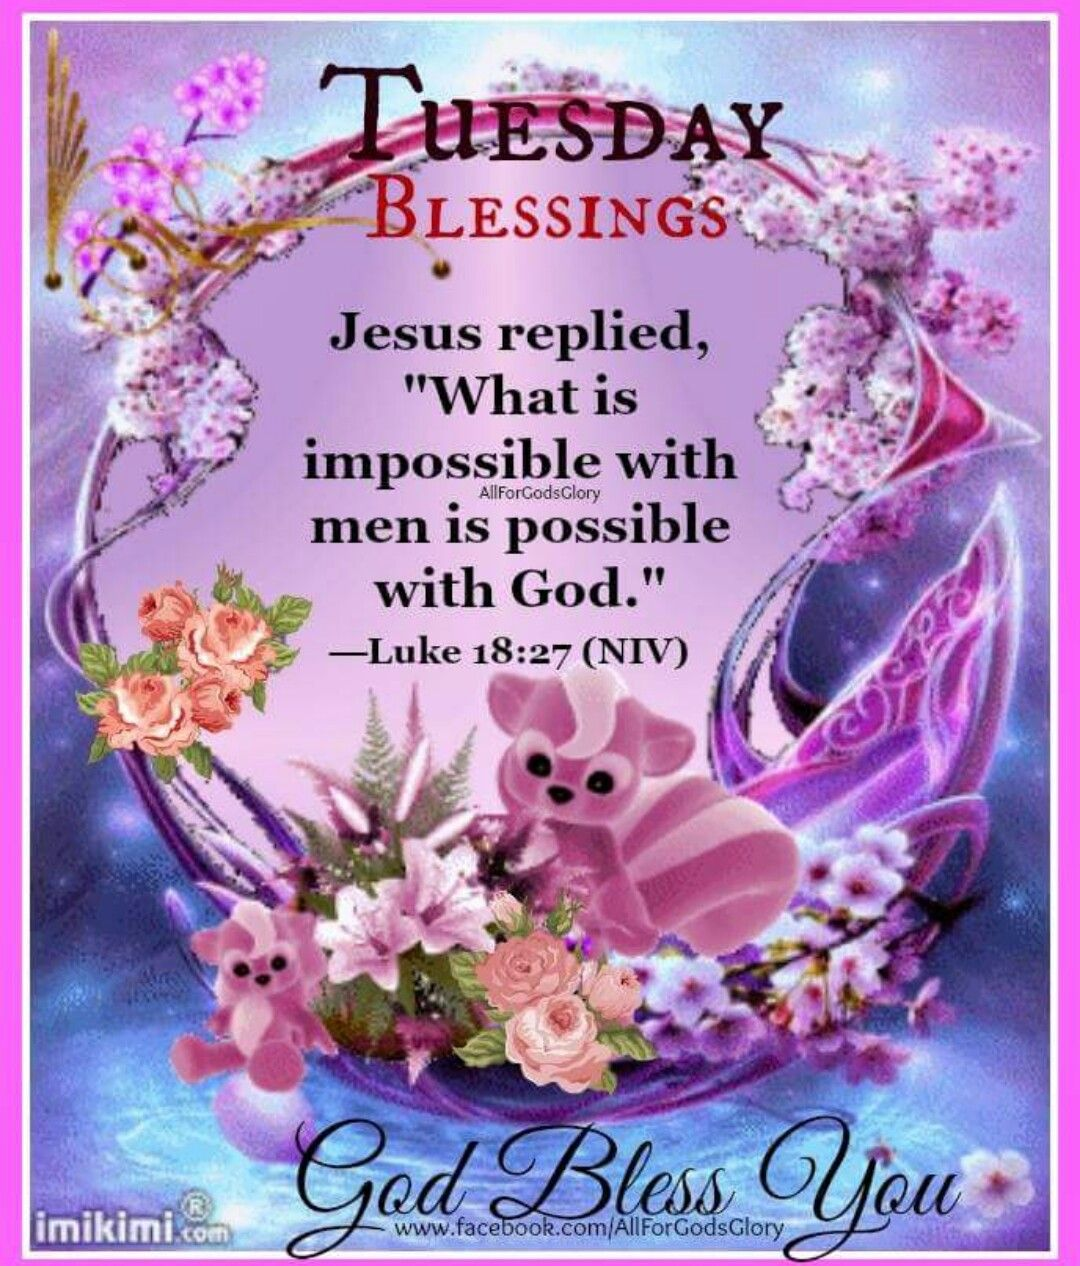 Good Morning Sister And Yours Wish You A Lovely Tuesday God Bless